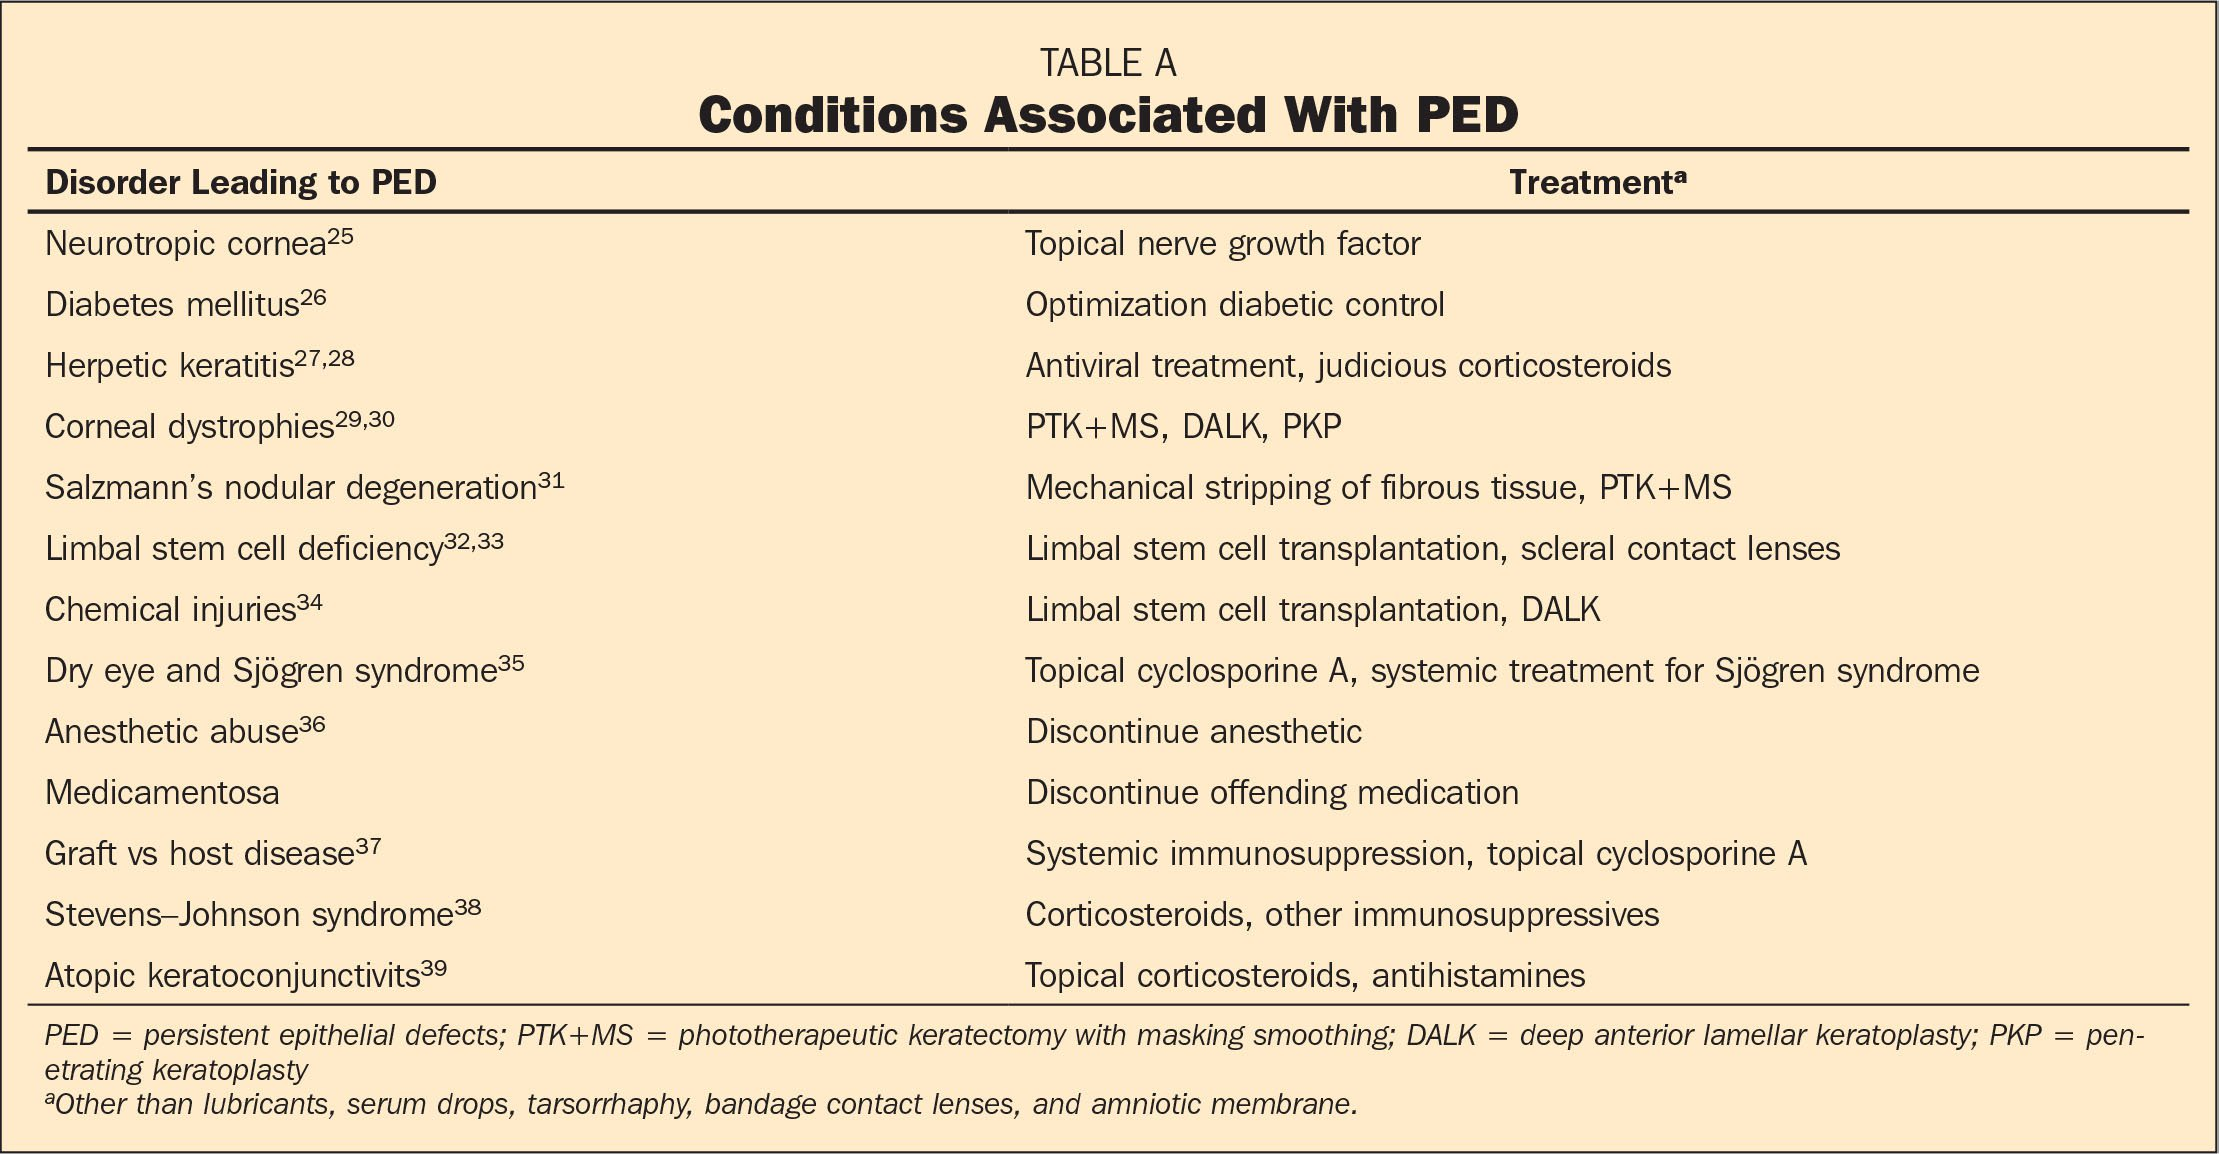 Conditions Associated With PED